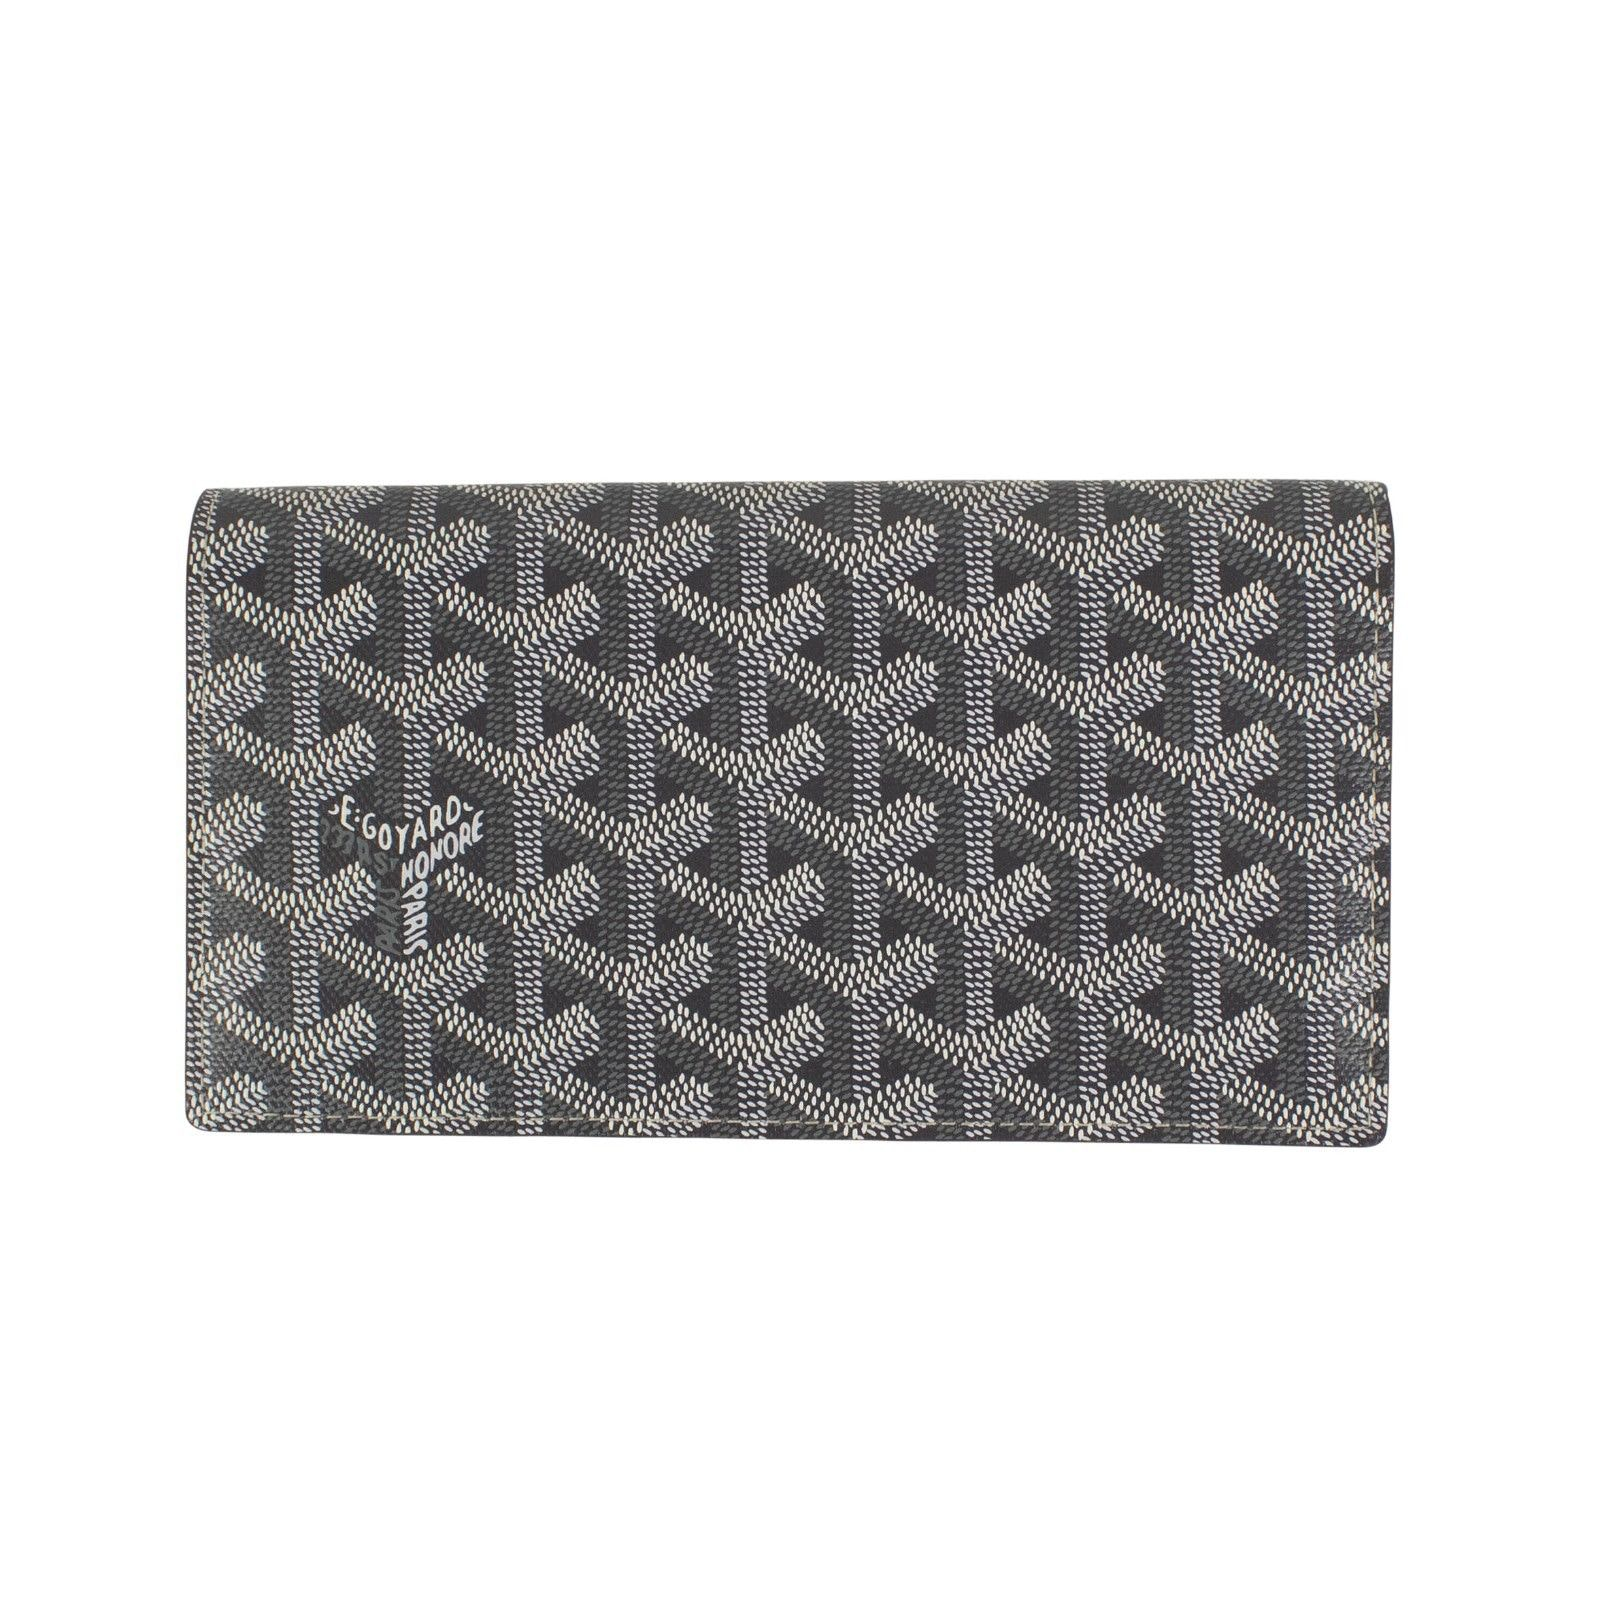 Goyard Richelieu Wallet Chevron Coated Canvas Gray